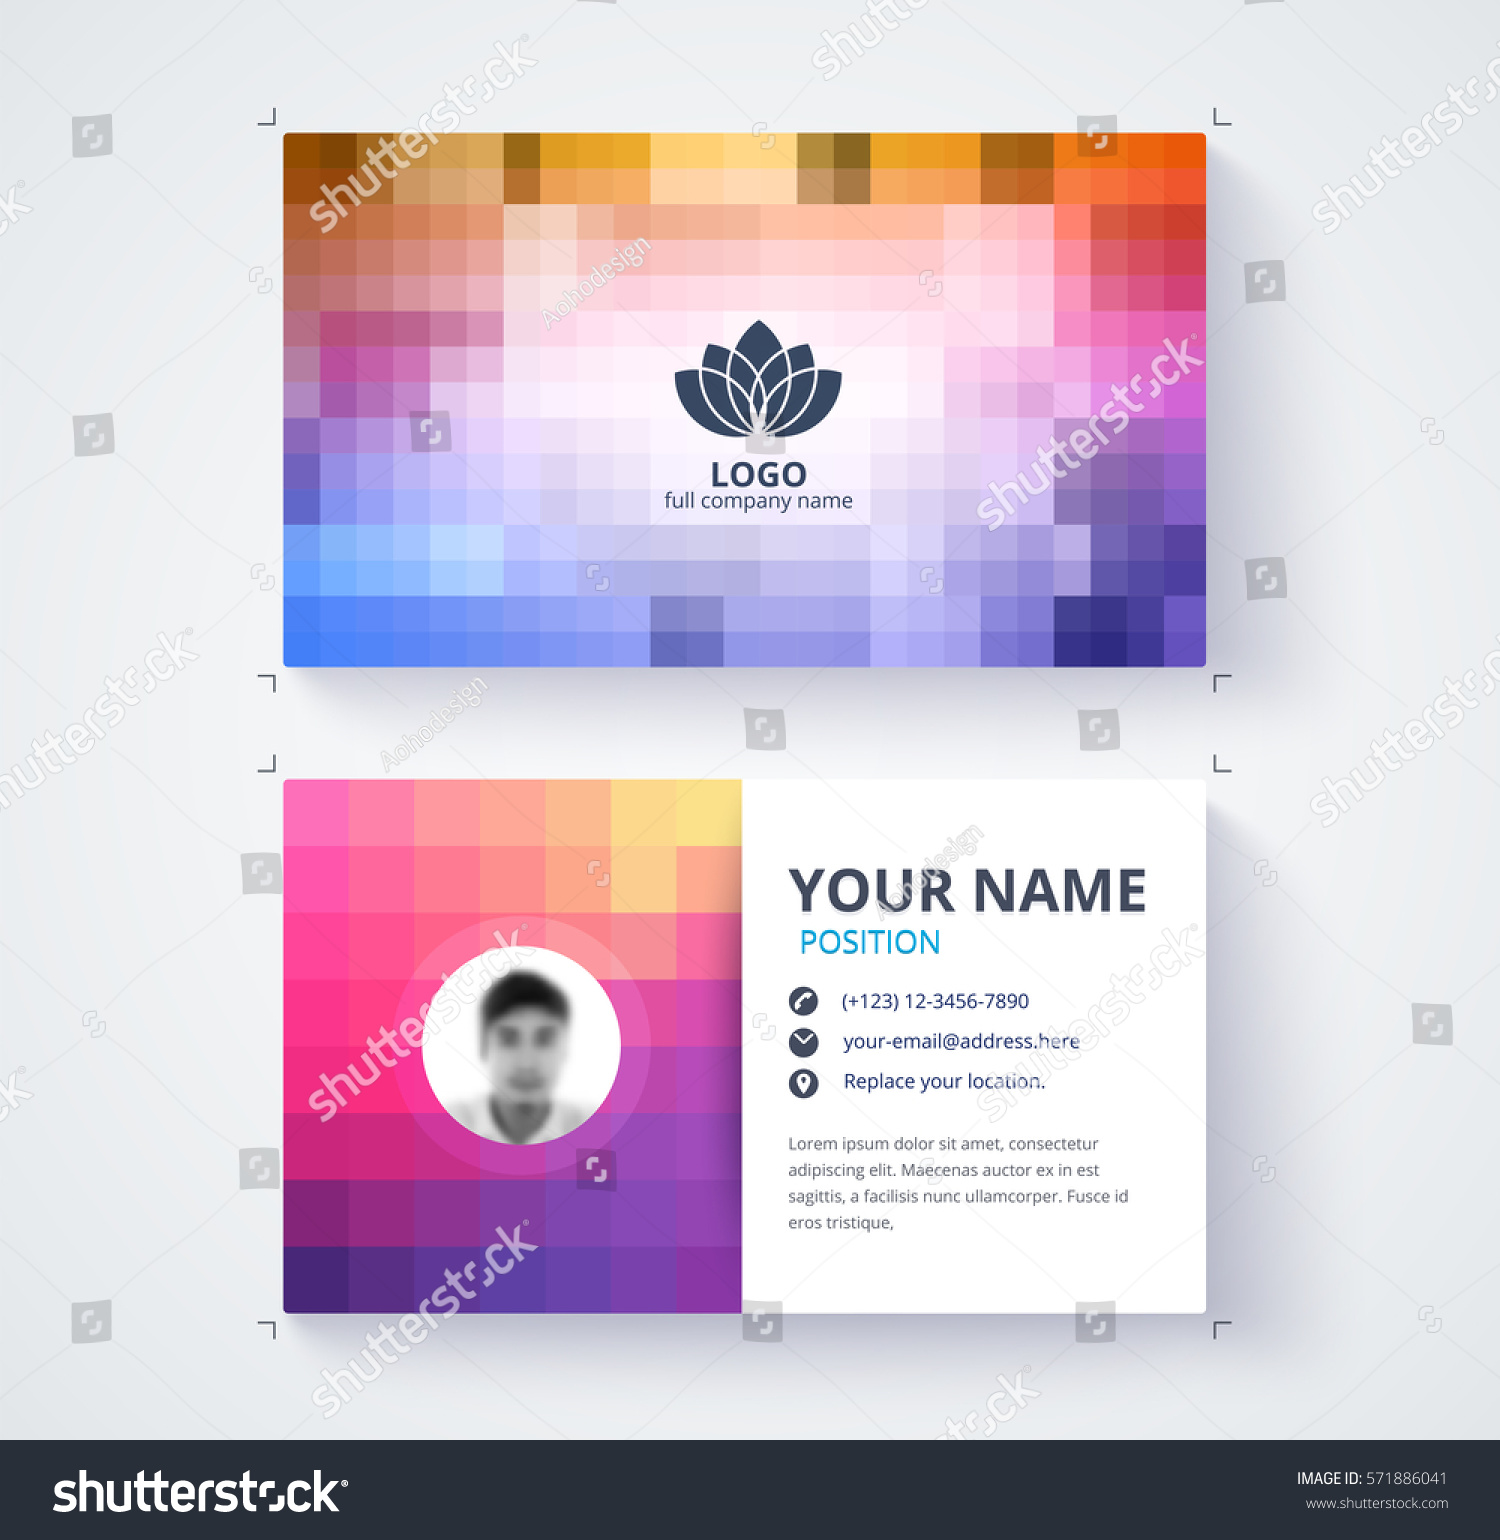 Abstract Pixel Business Card Template Contact Stock Vector 571886041 ...